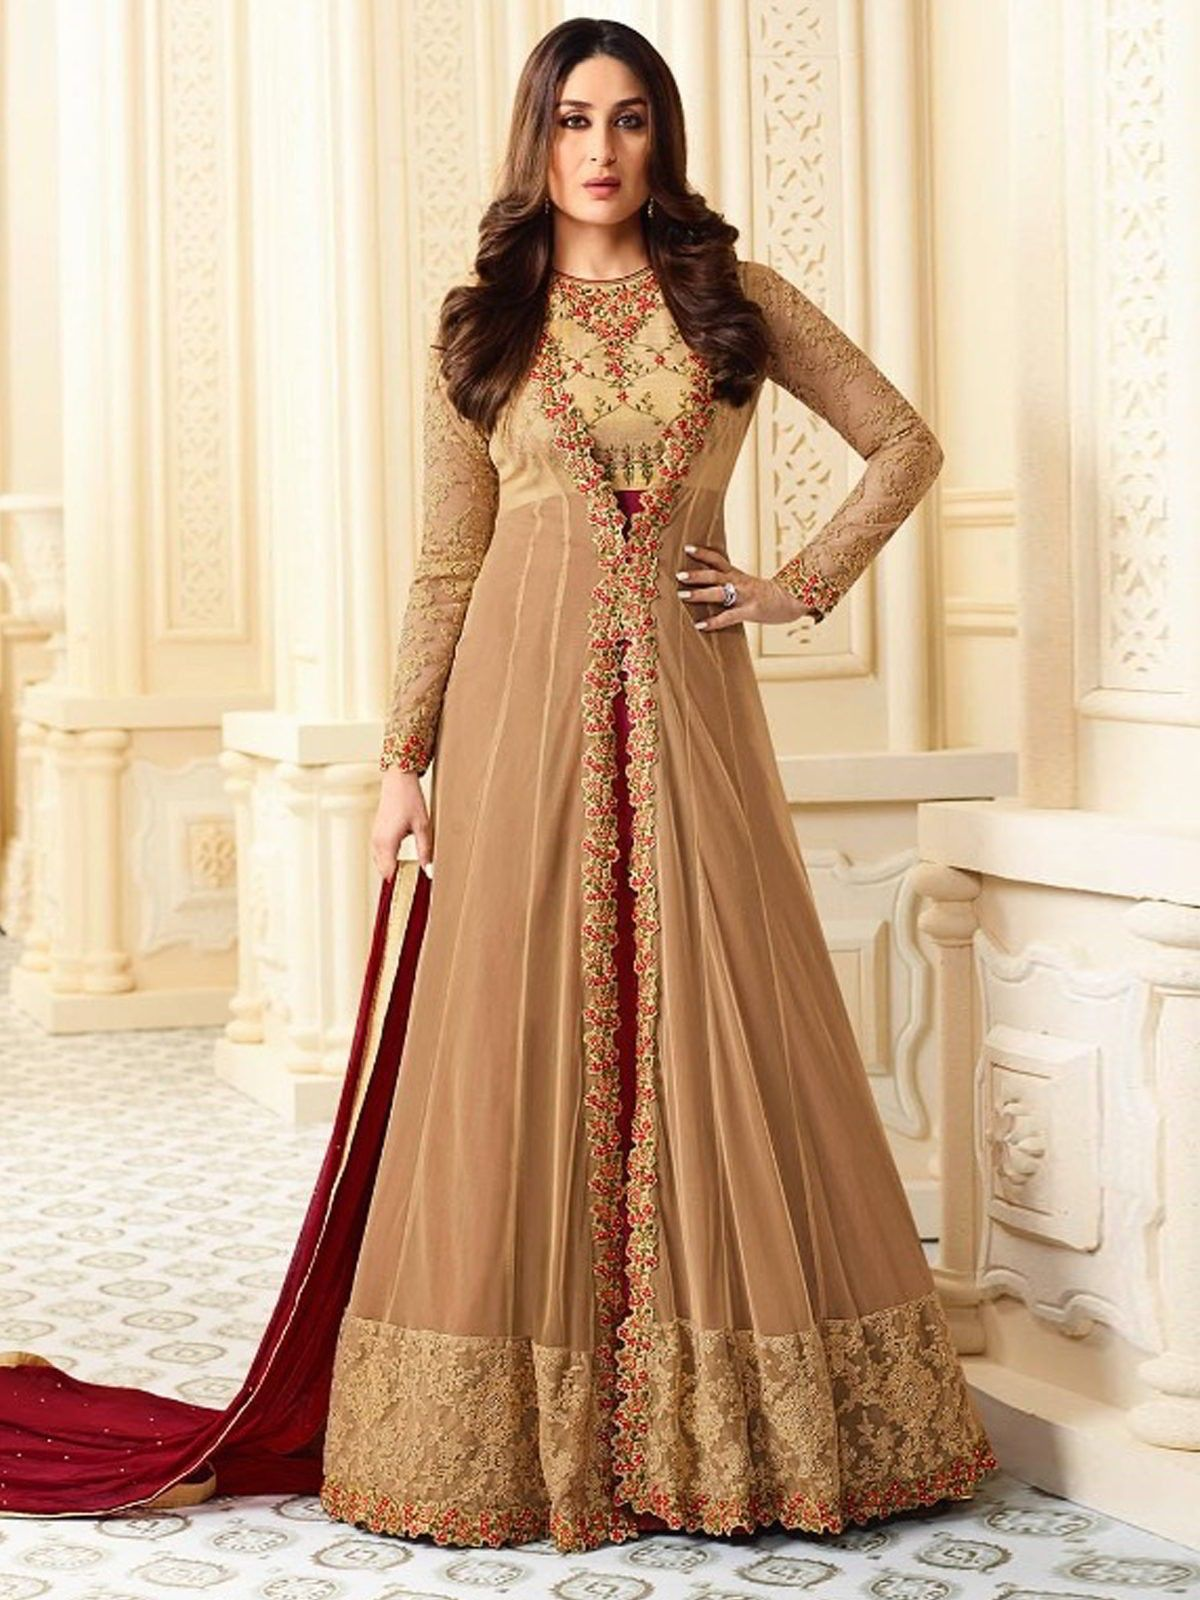 Kareenakapoor beige georgette anarkalisuit latest anarkali suits